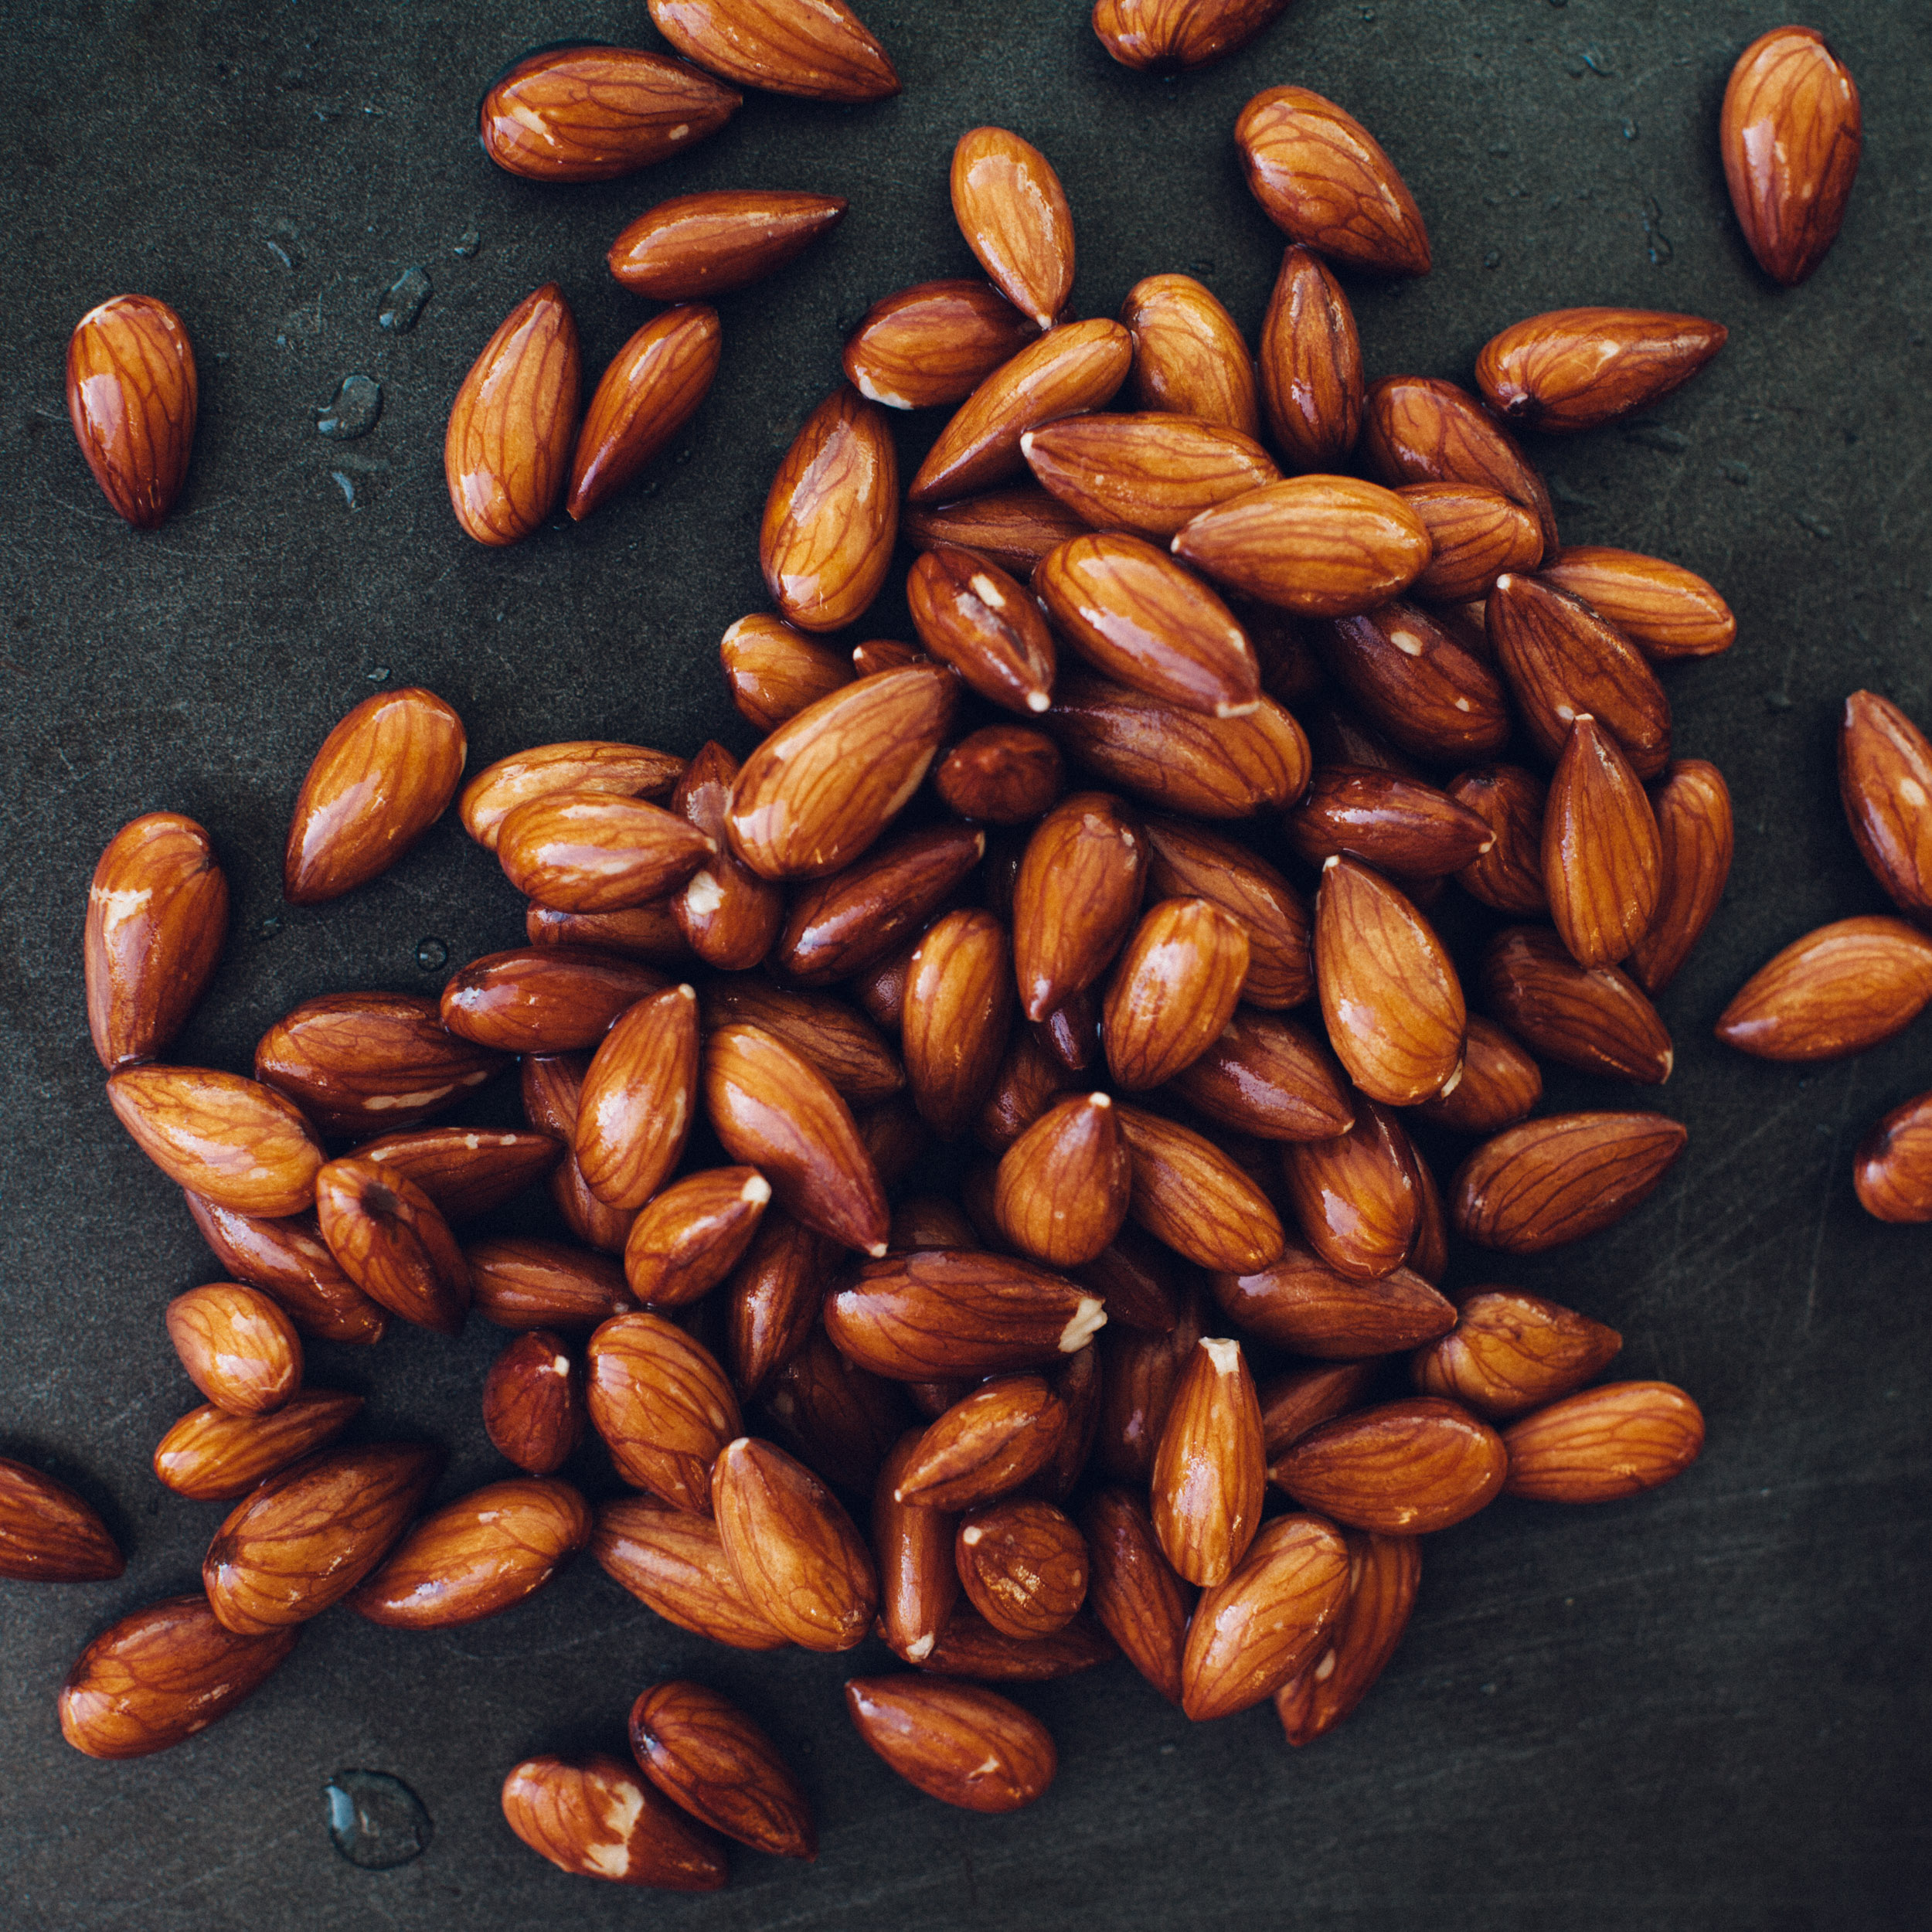 WATER-SOAKED ALMONDS